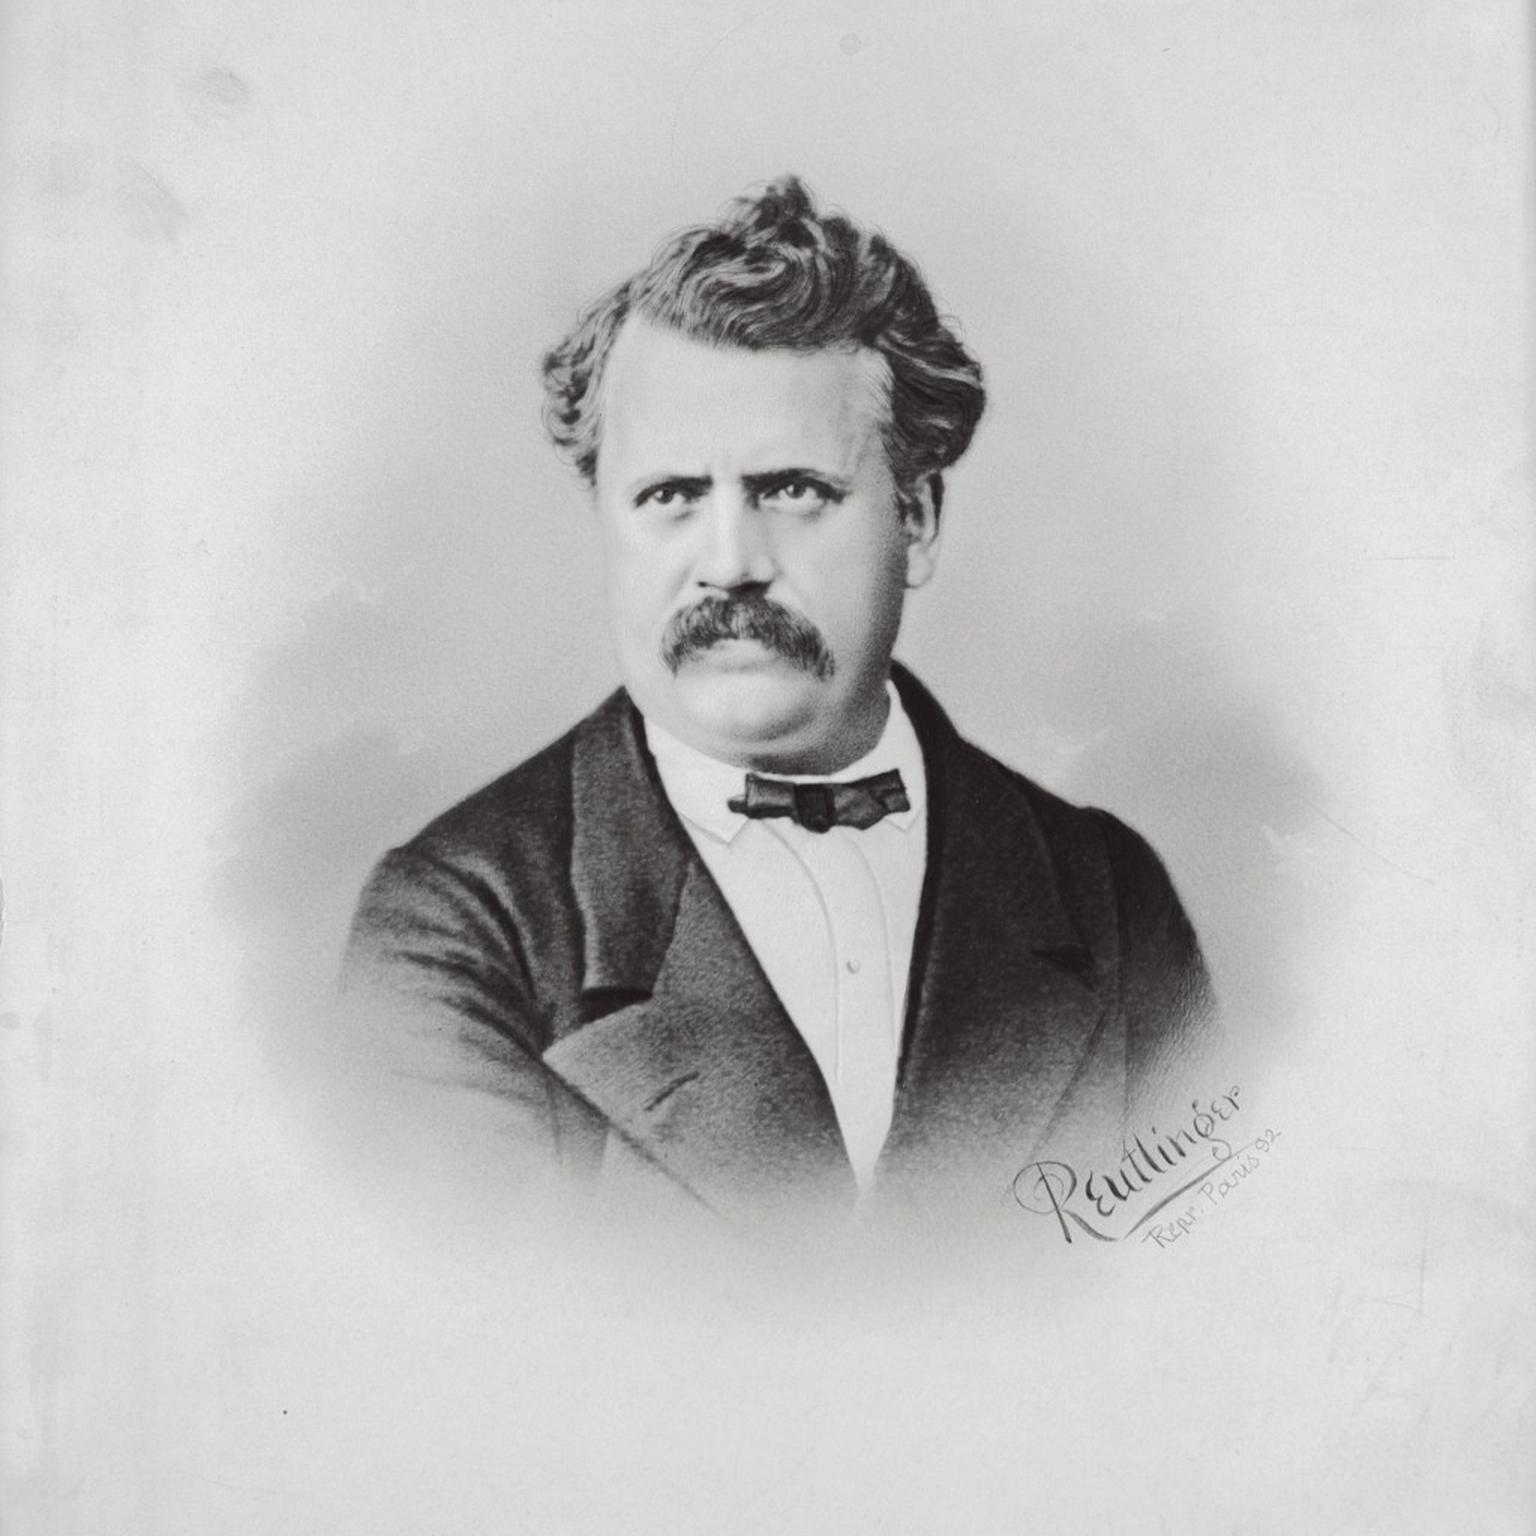 Portrait of Louis Vuitton